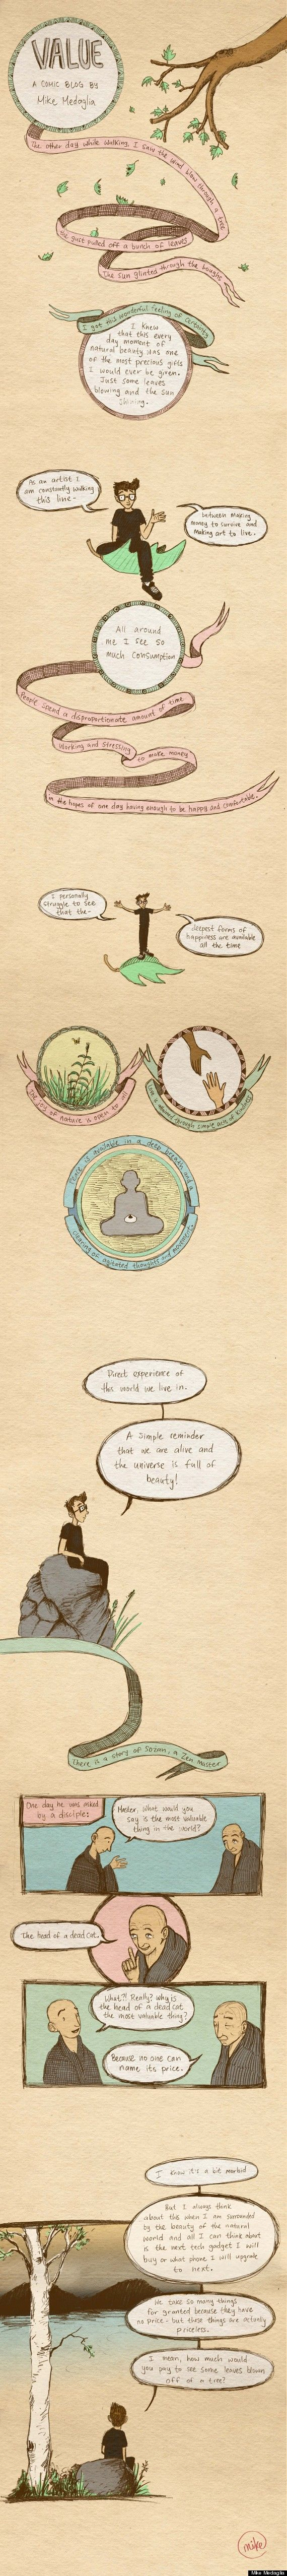 Meditation Comic Of The Week: What Do You Consider To Be A Gift Of True Value?